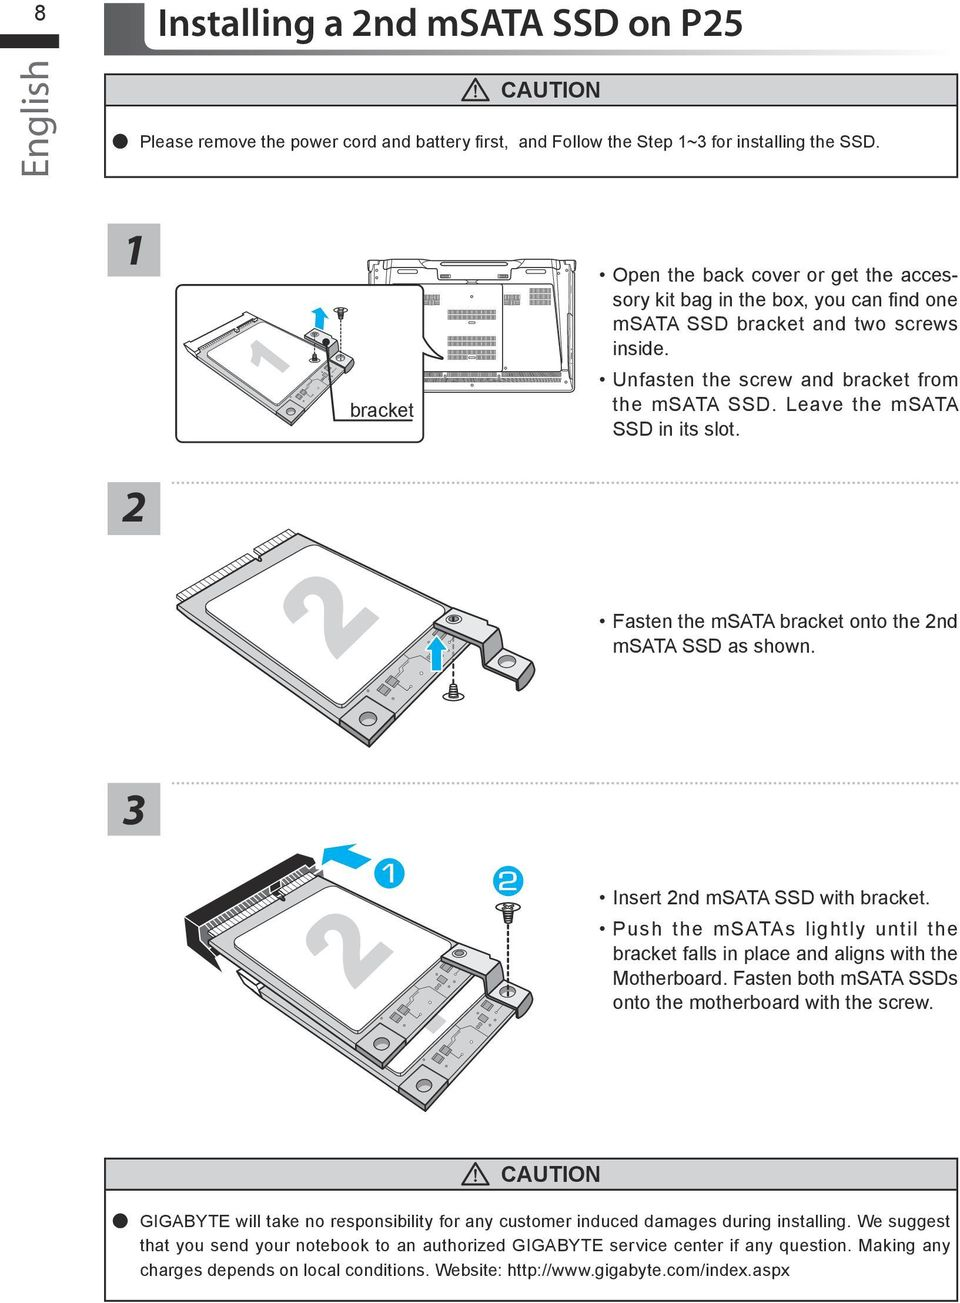 Leave the msata SSD in its slot. Fasten the msata bracket onto the nd msata SSD as shown. Insert nd msata SSD with bracket.